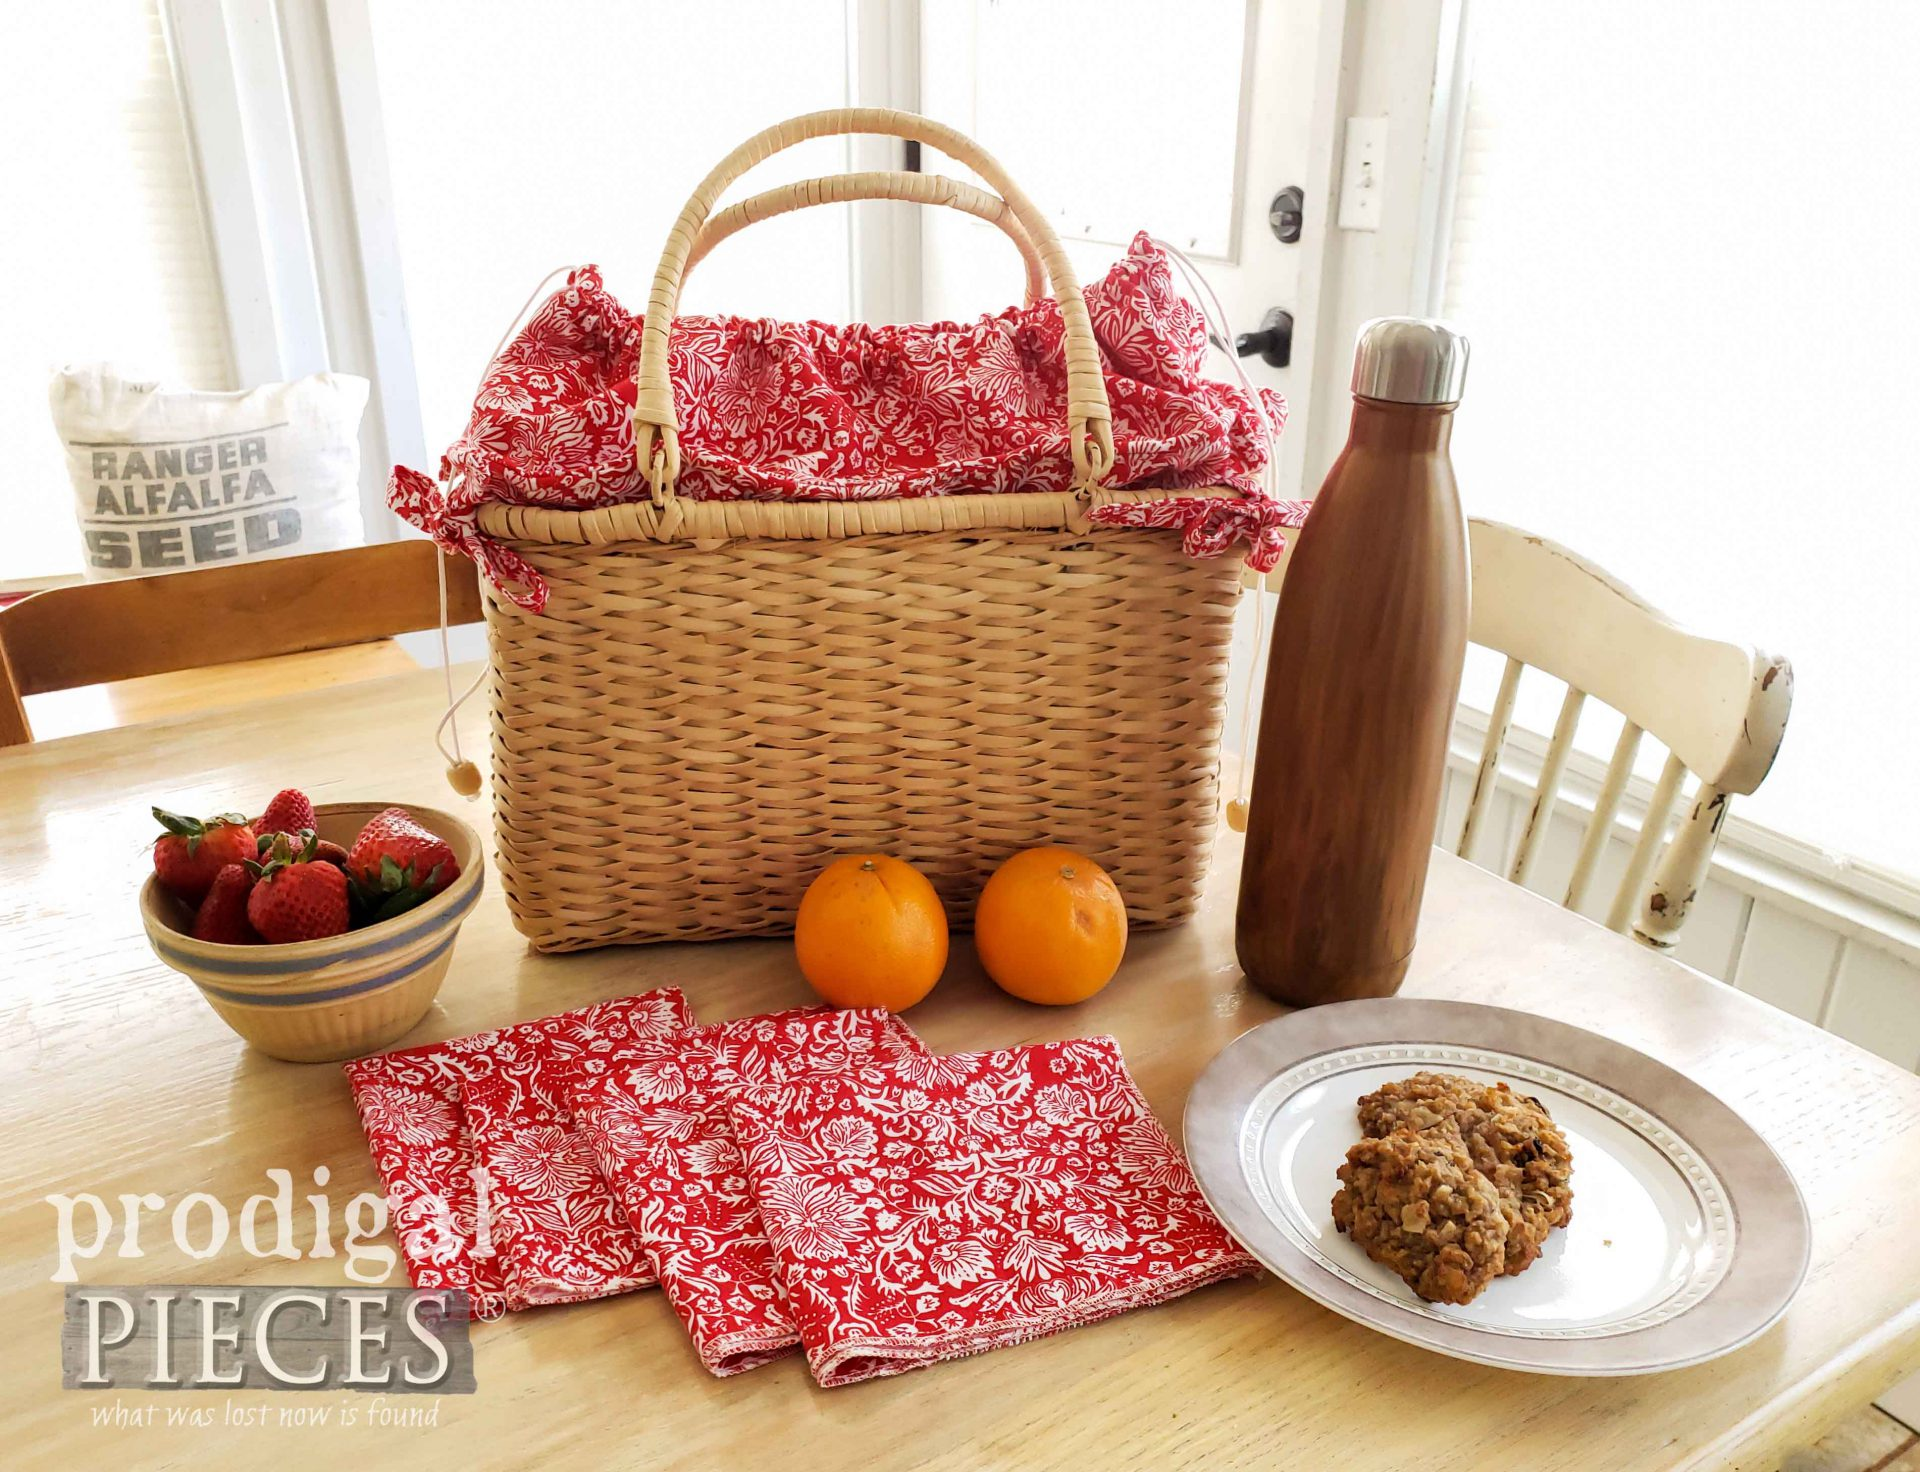 Handmade Insulated Picnic Basket with Four Cloth Napkins by Larissa of Prodigal Pieces | prodigalpieces.com #prodigalpieces #handmade #diy #farmhouse #summer #picnic